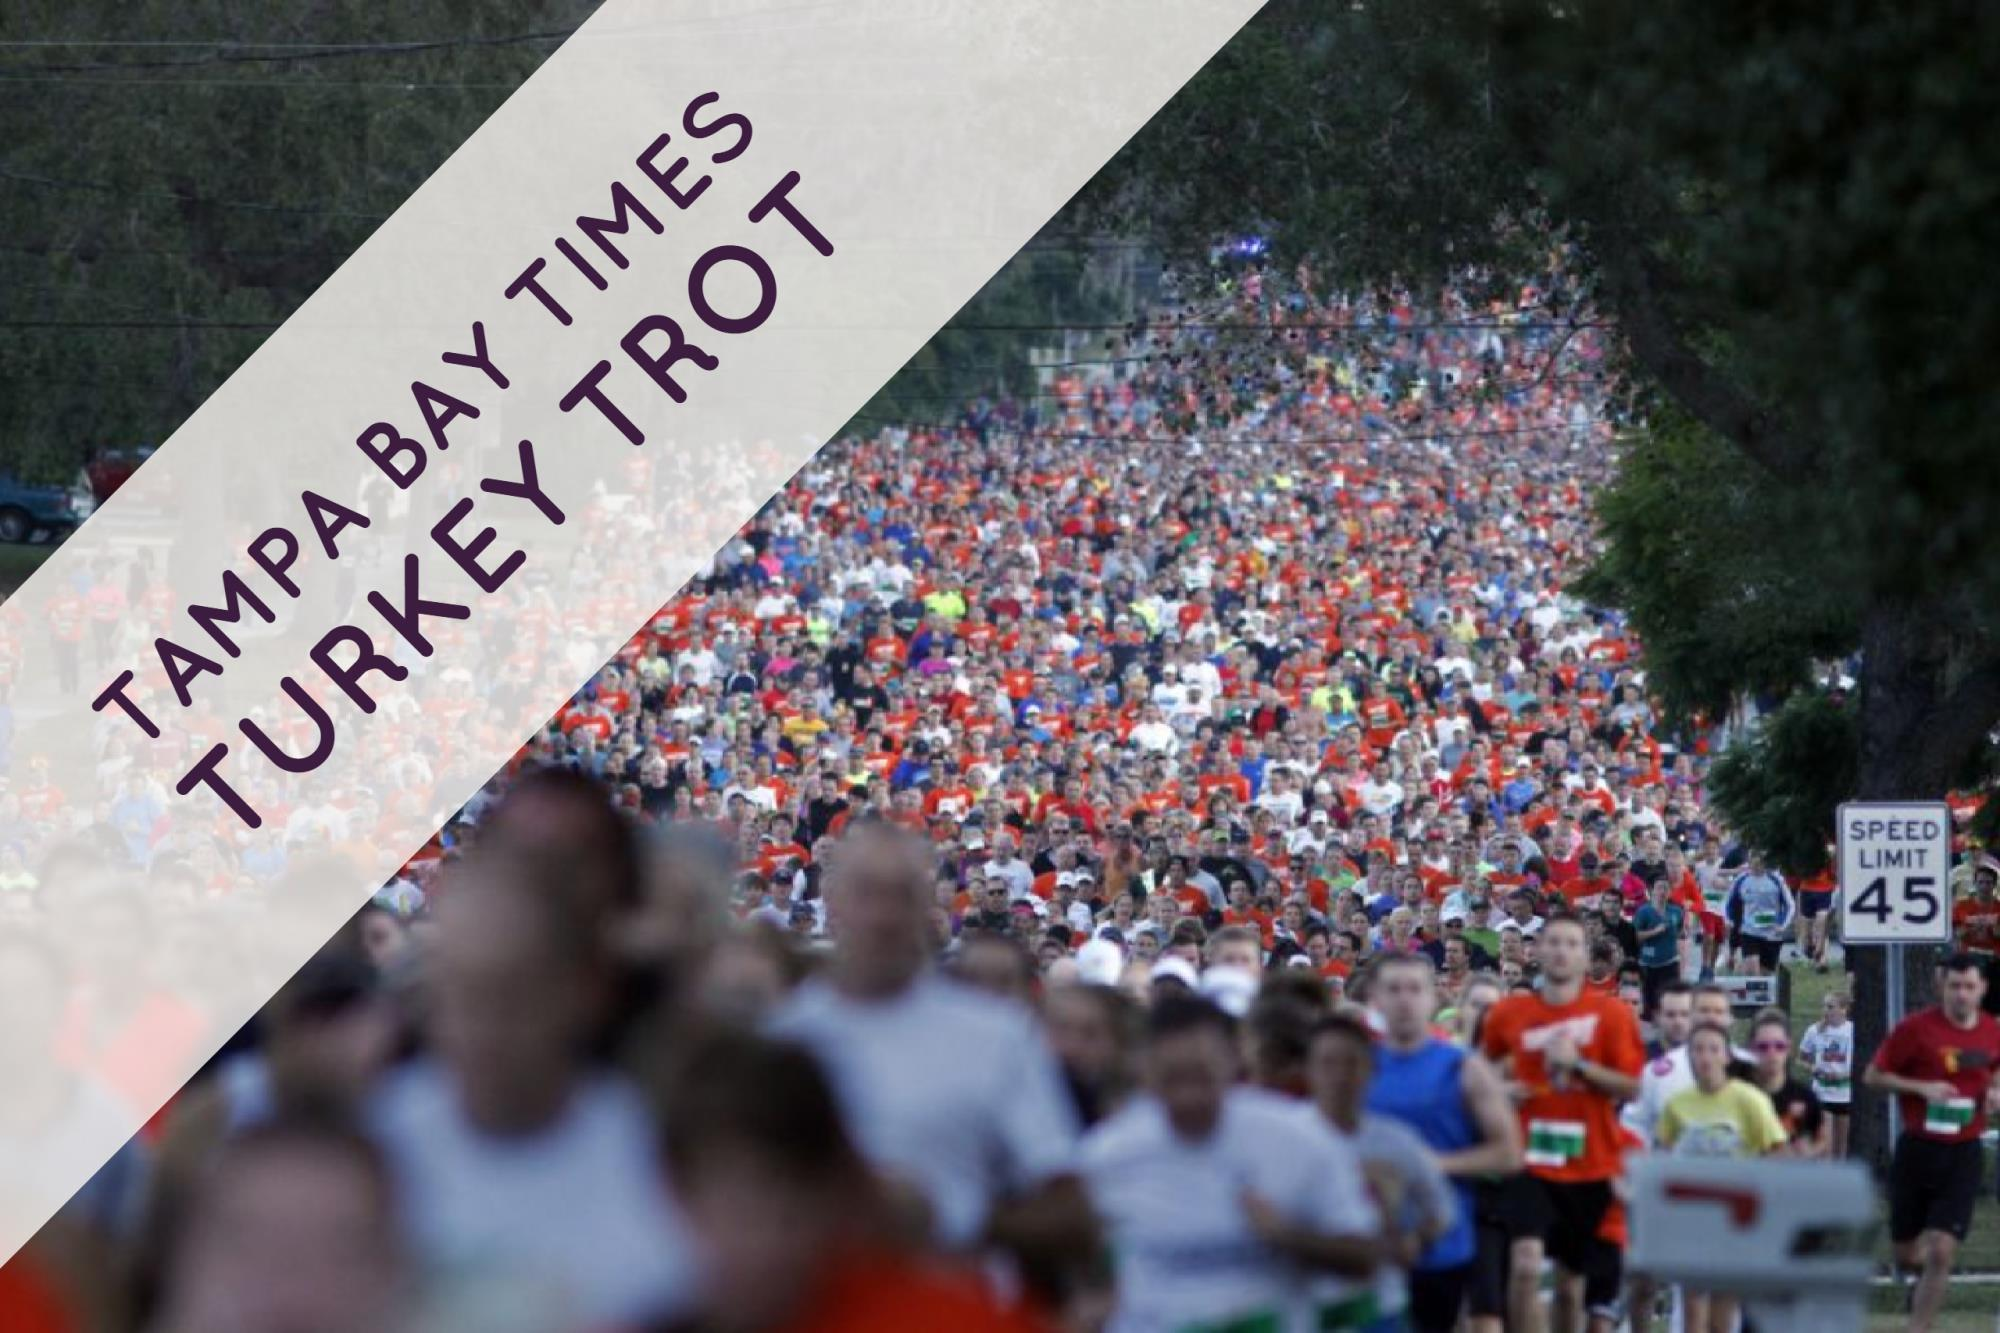 Image link to Tampa Bay Times Turkey Trot